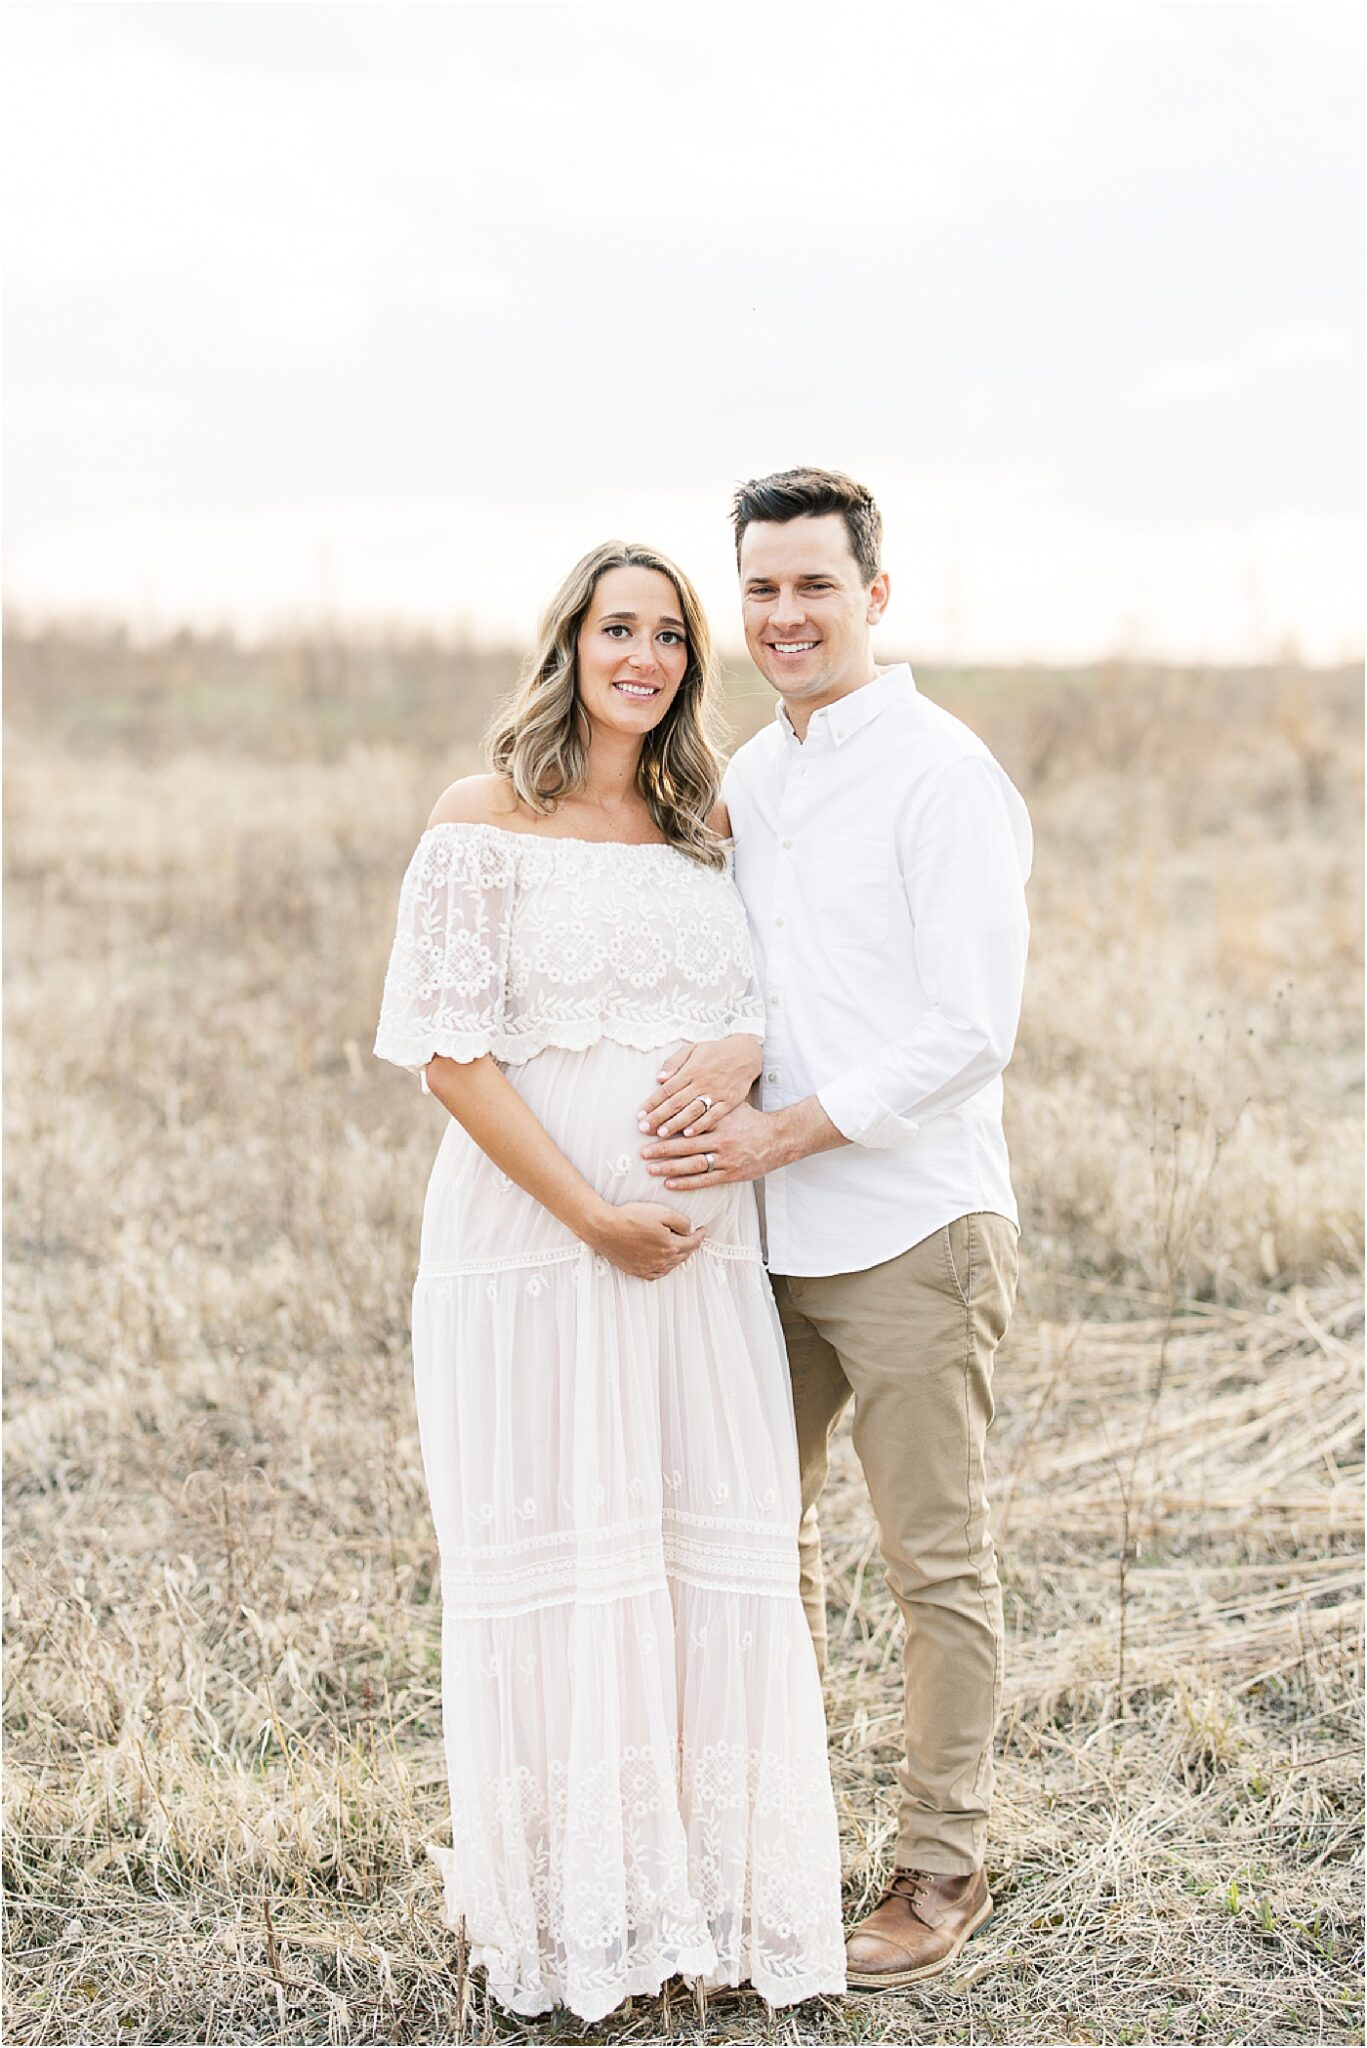 Maternity session in open field in Broad Ripple Indiana. Photo by Lindsay Konopa Photography.